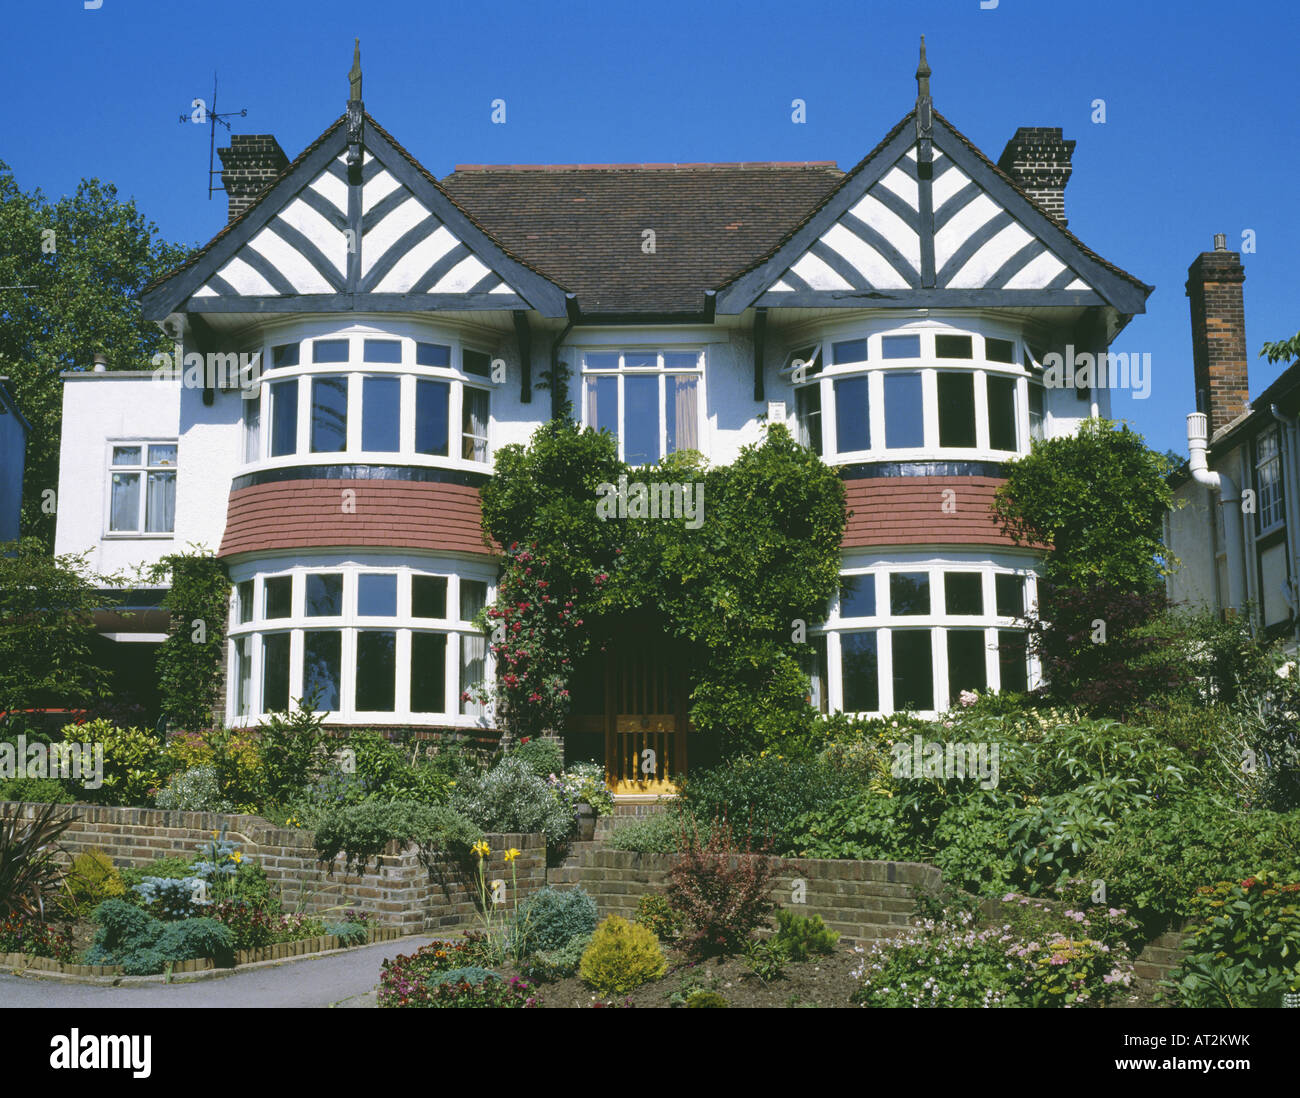 Double Fronted Detached Thirties House With Bay Windows